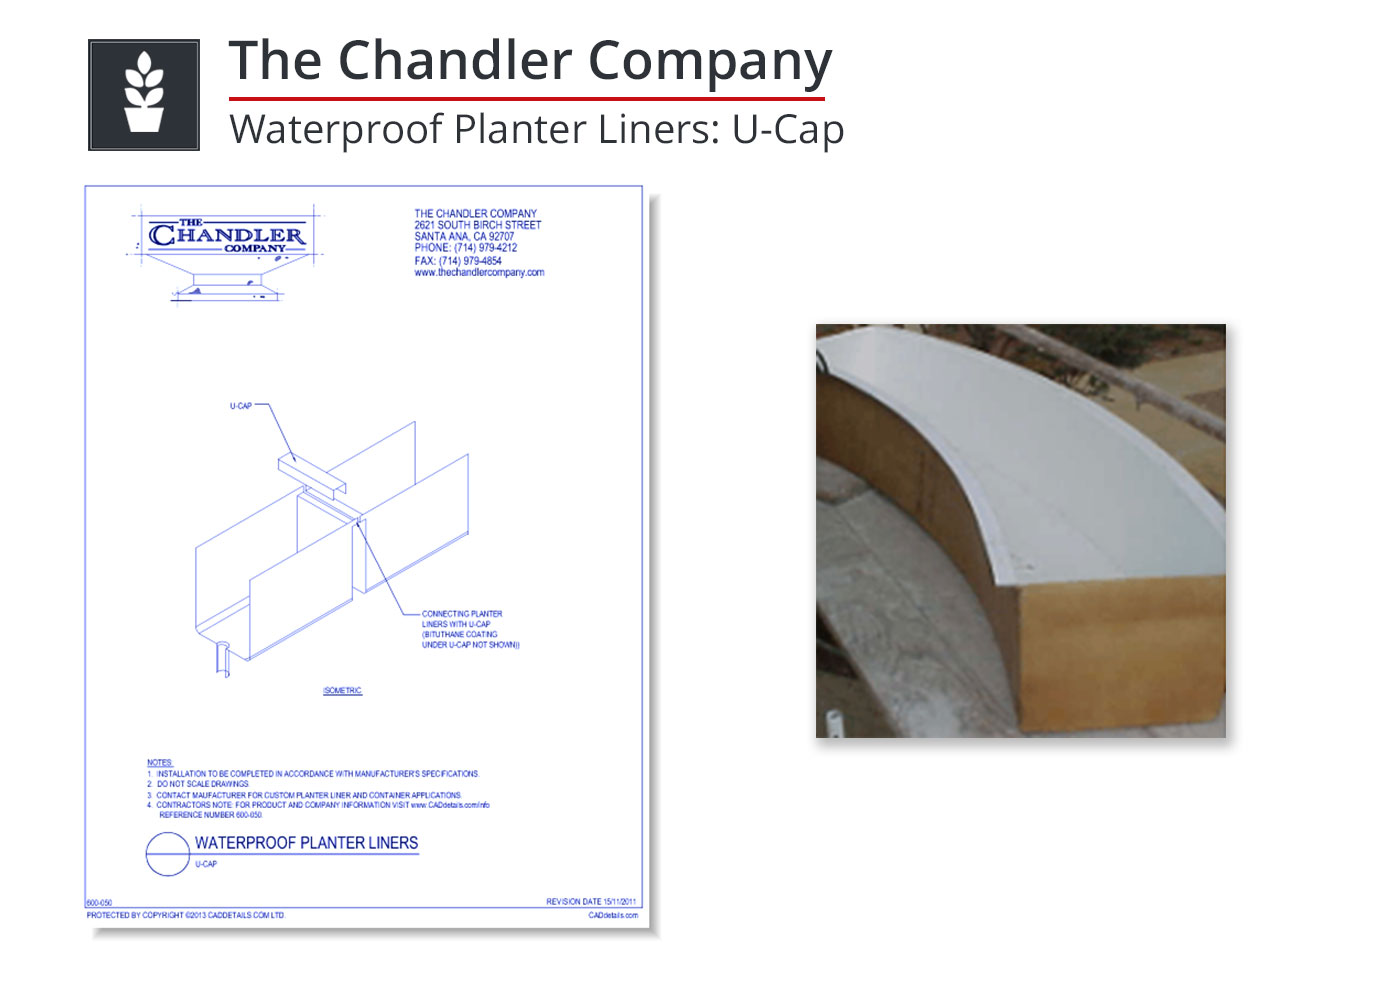 The-Chandler-Company-U-Cap-Waterproof-Planter-Liners-CAD-Drawing.jpg